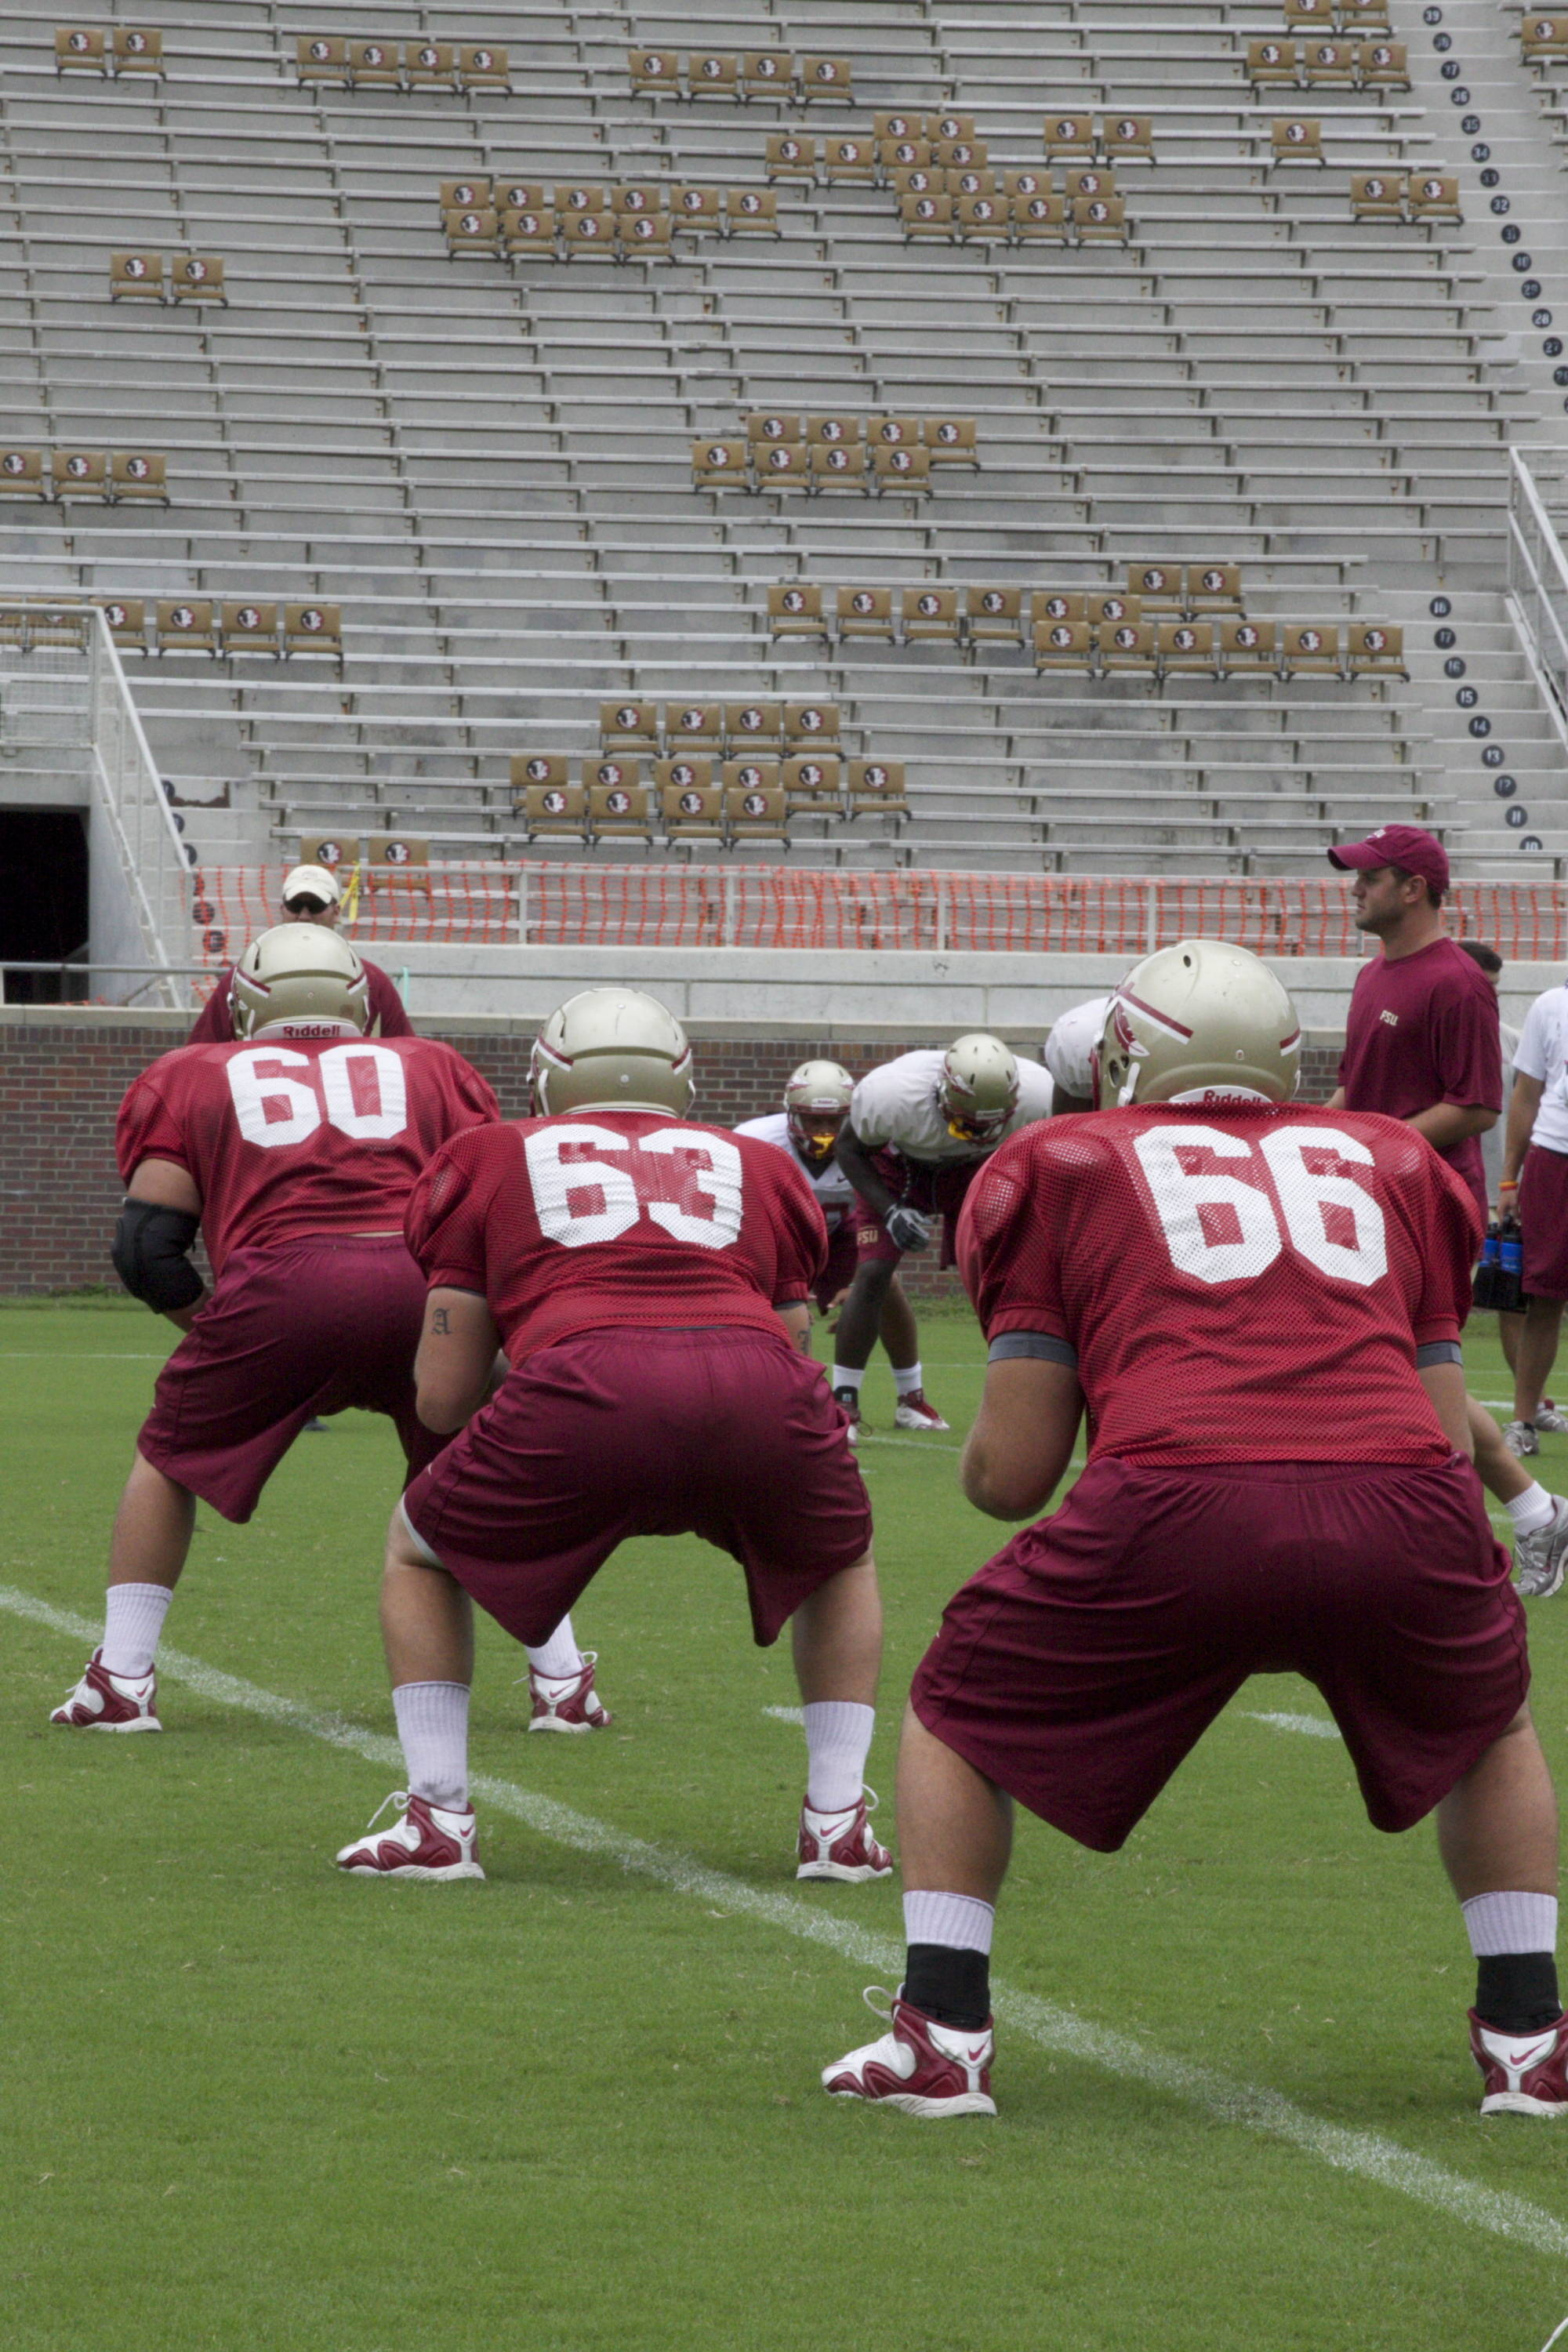 Offensive line stretching